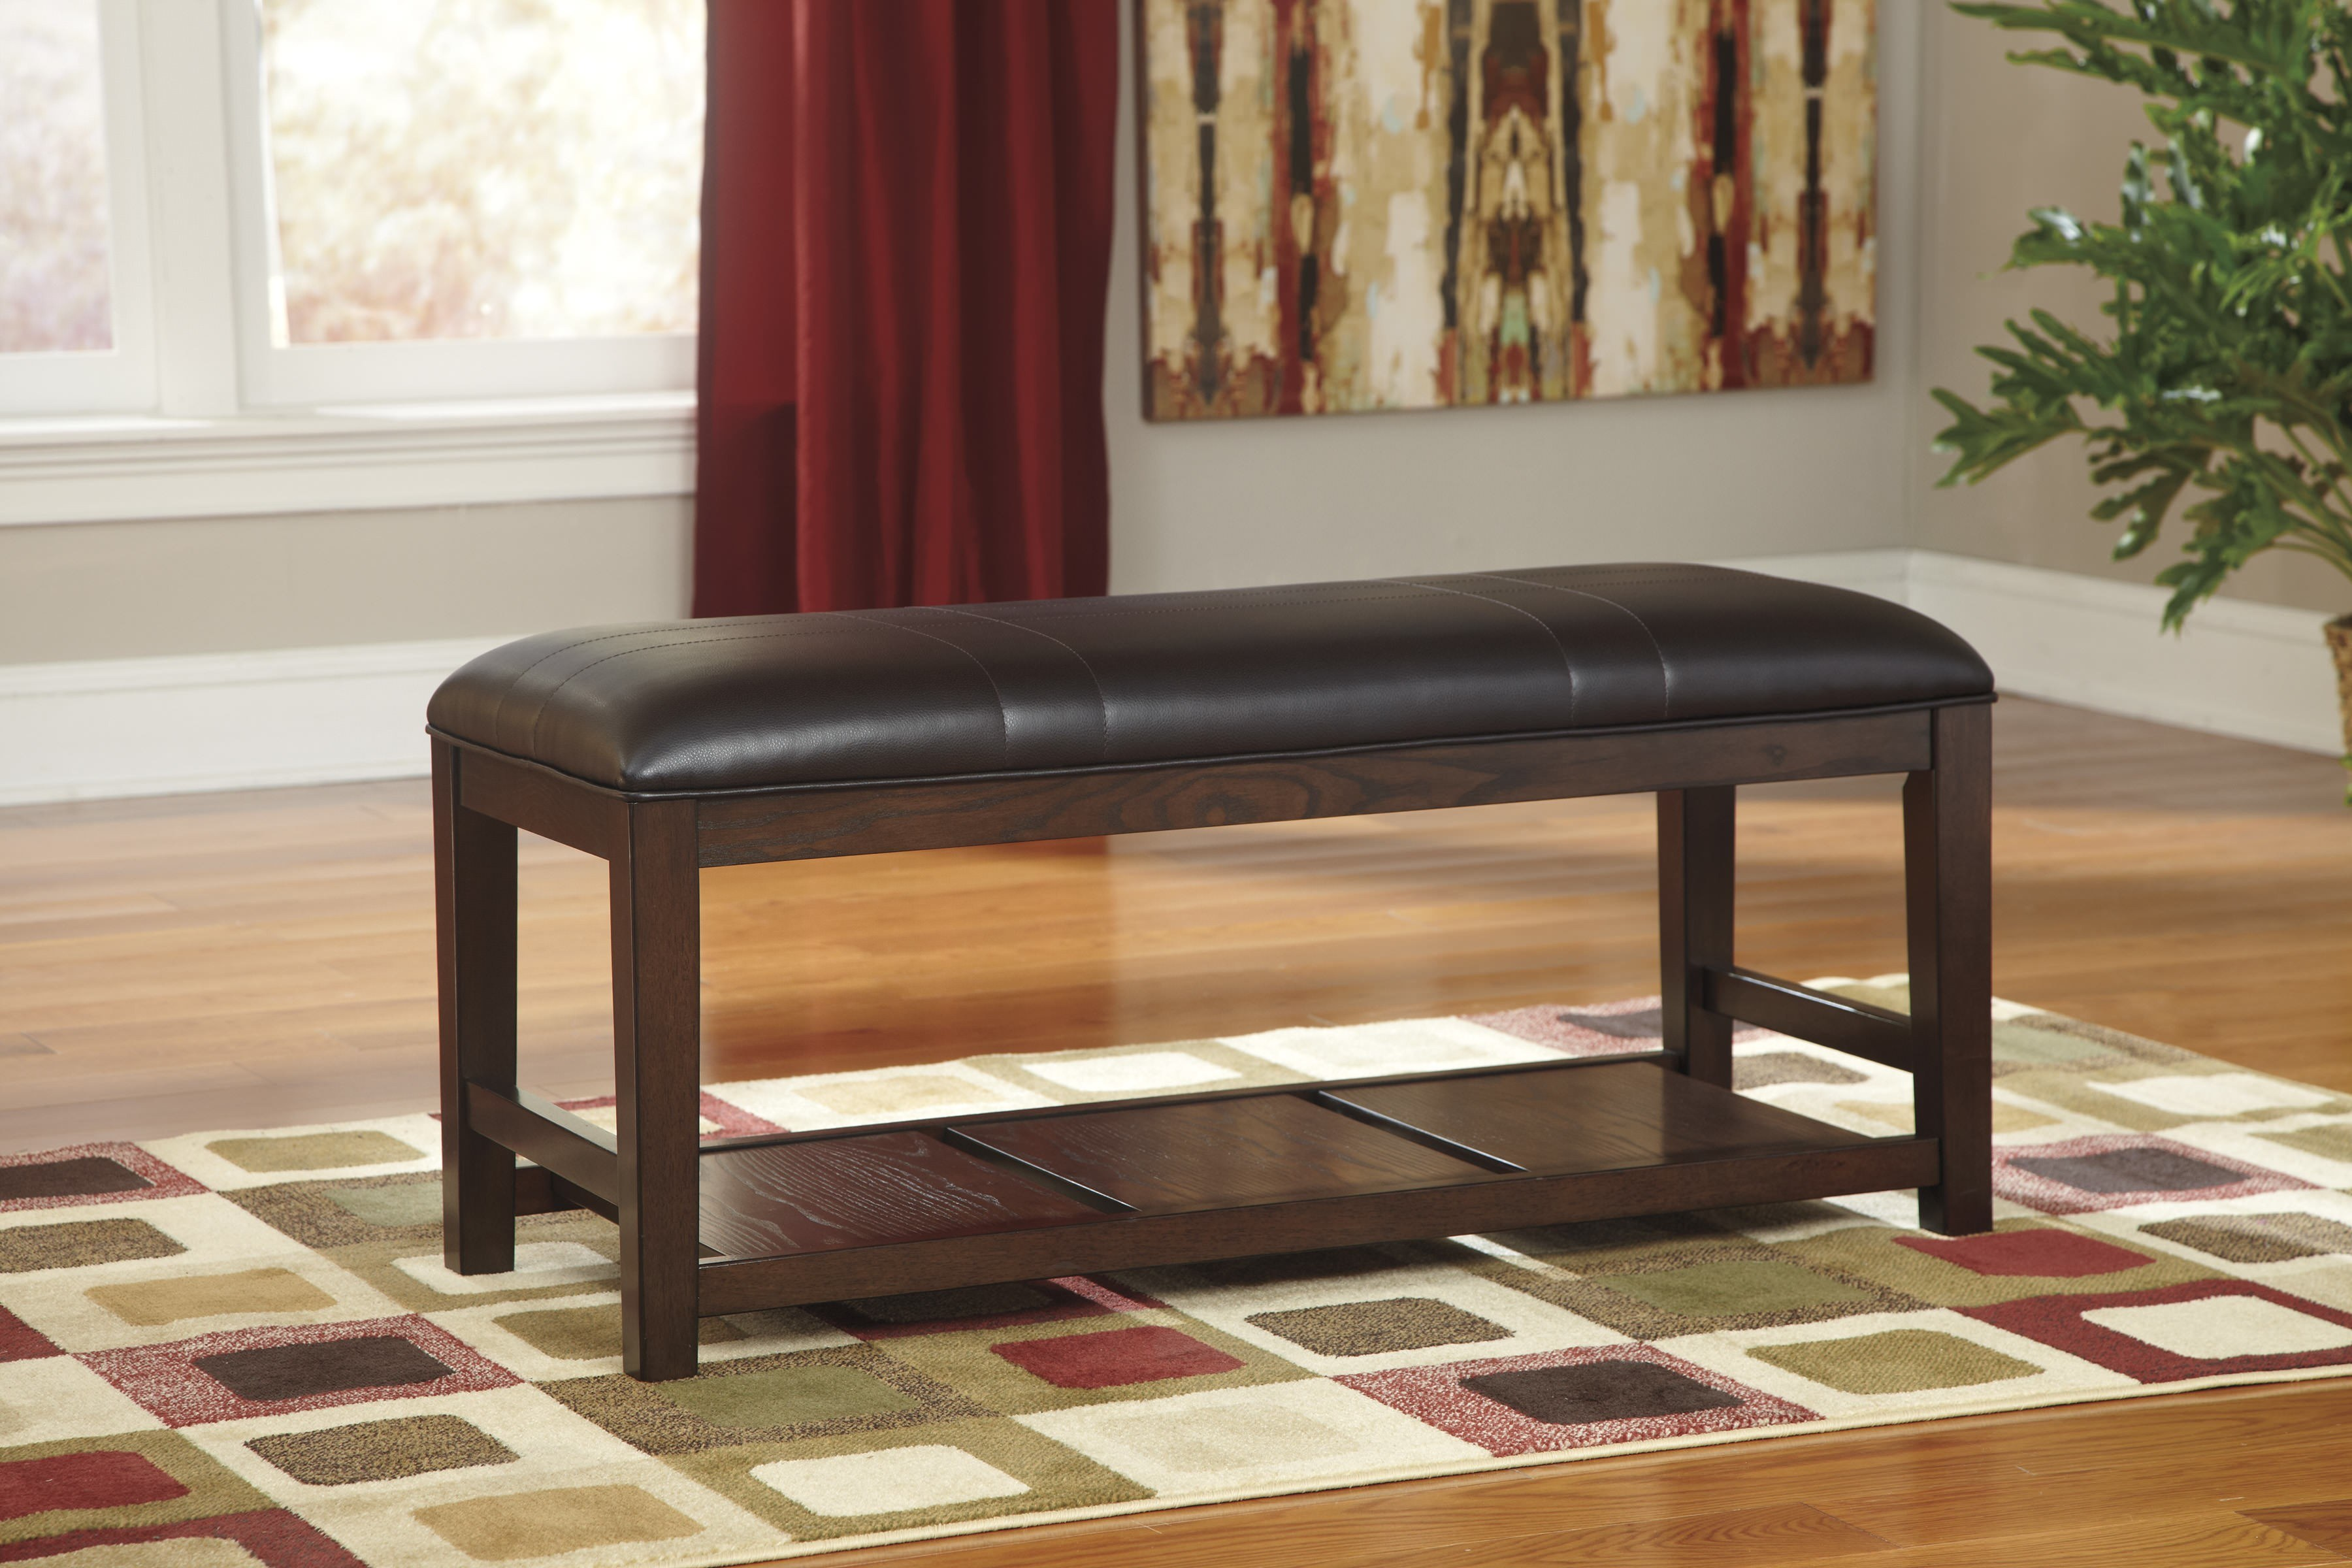 Signature Design By Ashley Watson Large Dining Room Bench D541 00